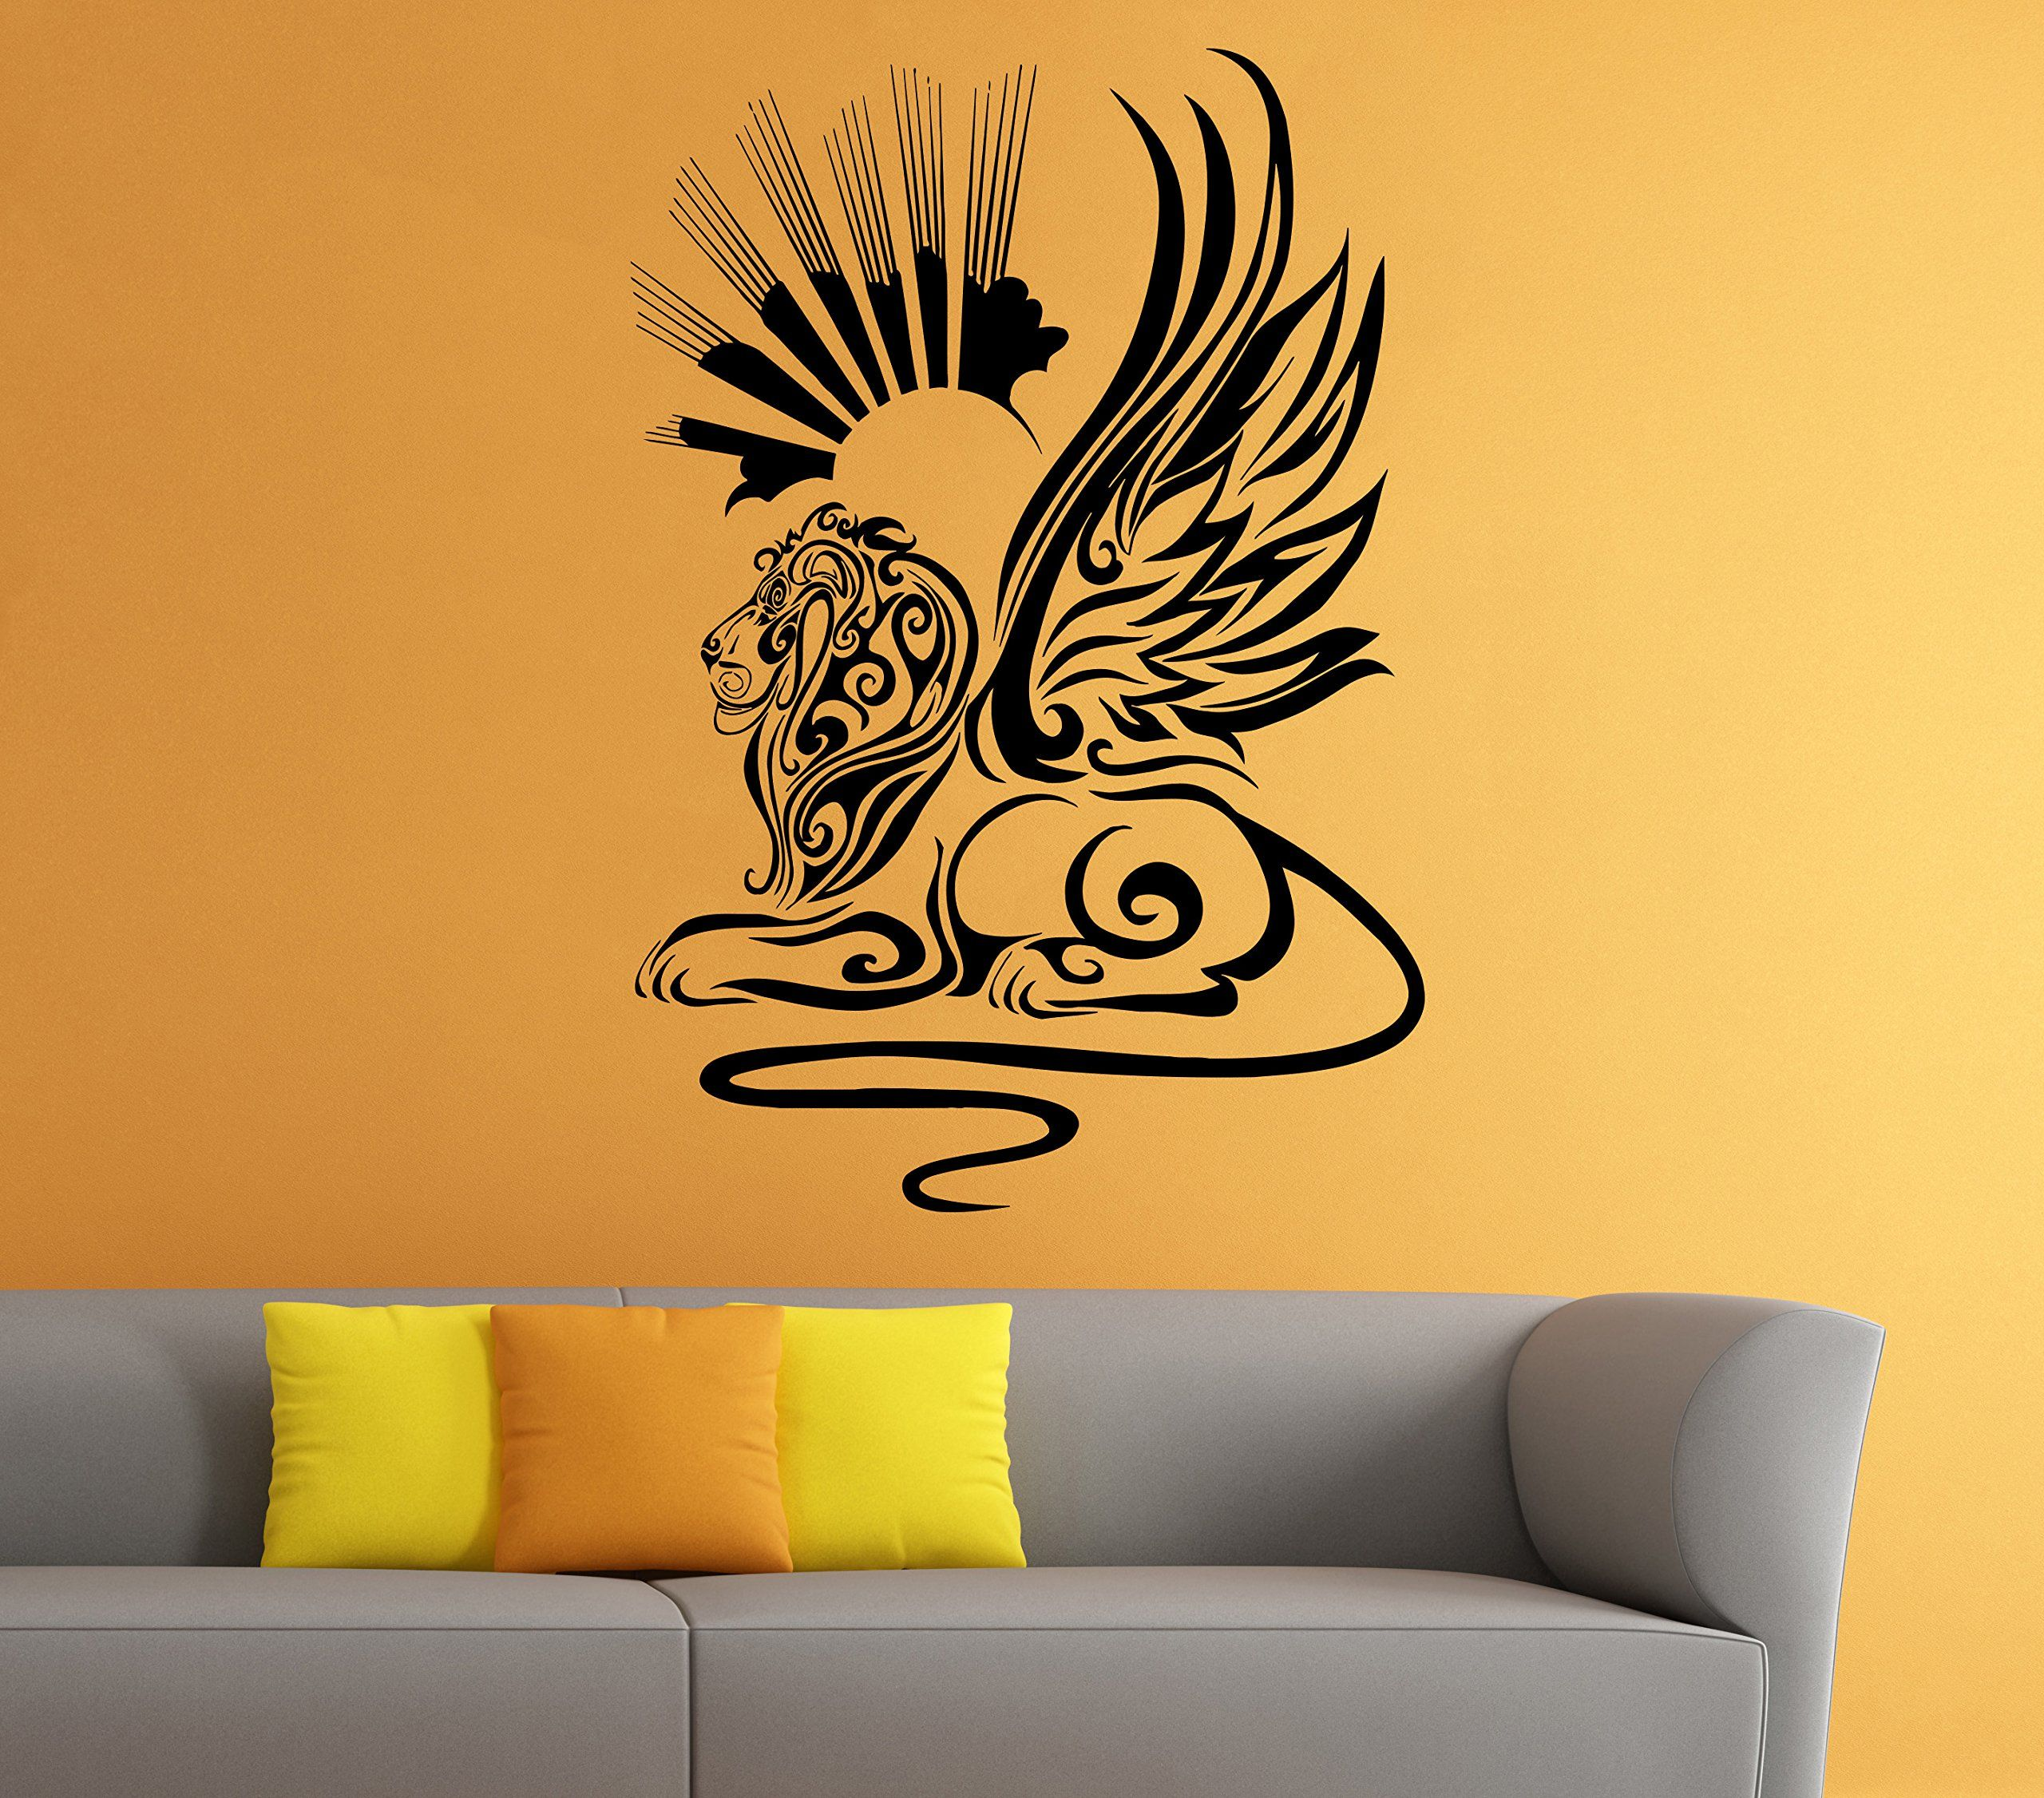 Wall Stickers Vinyl Decal Home Decor Egyptian Symbol Art Design ...